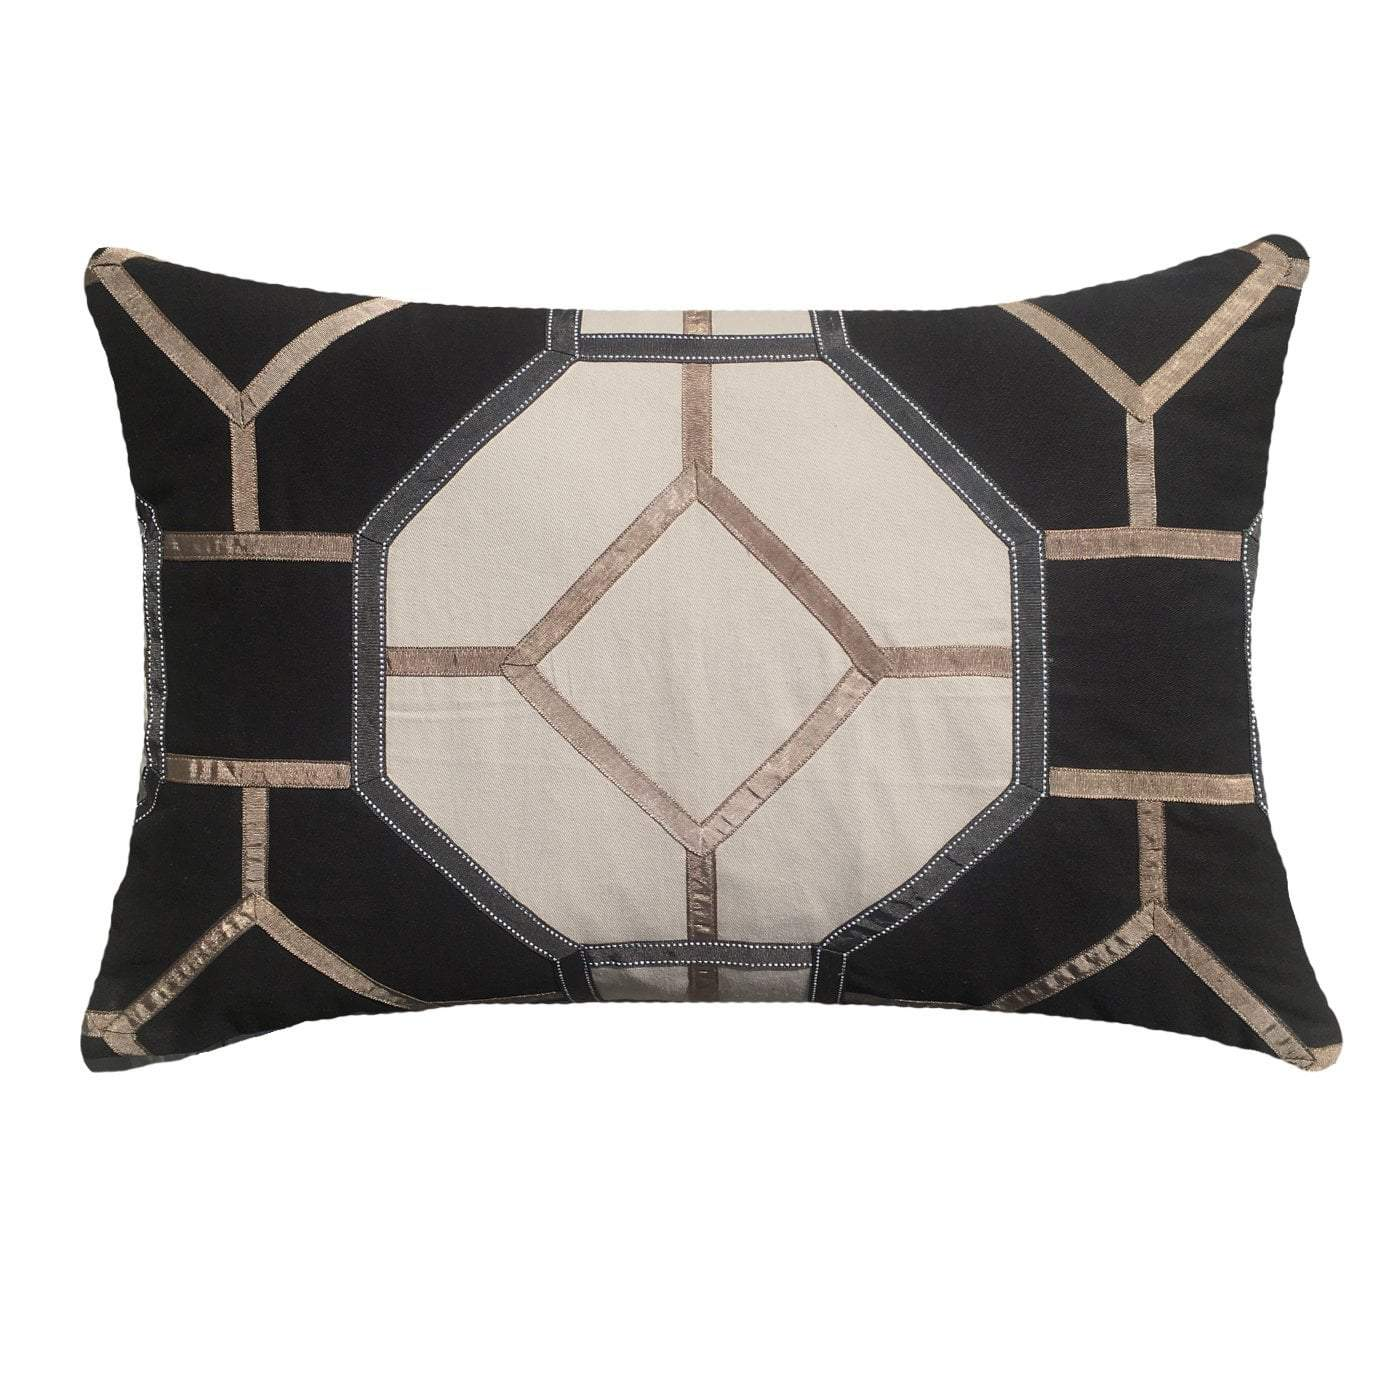 Bandhini Homewear Design Lumber Cushion Black / 14 x 21 Lantern Pagoda Black Lumber Cushion 30 x 53 cm